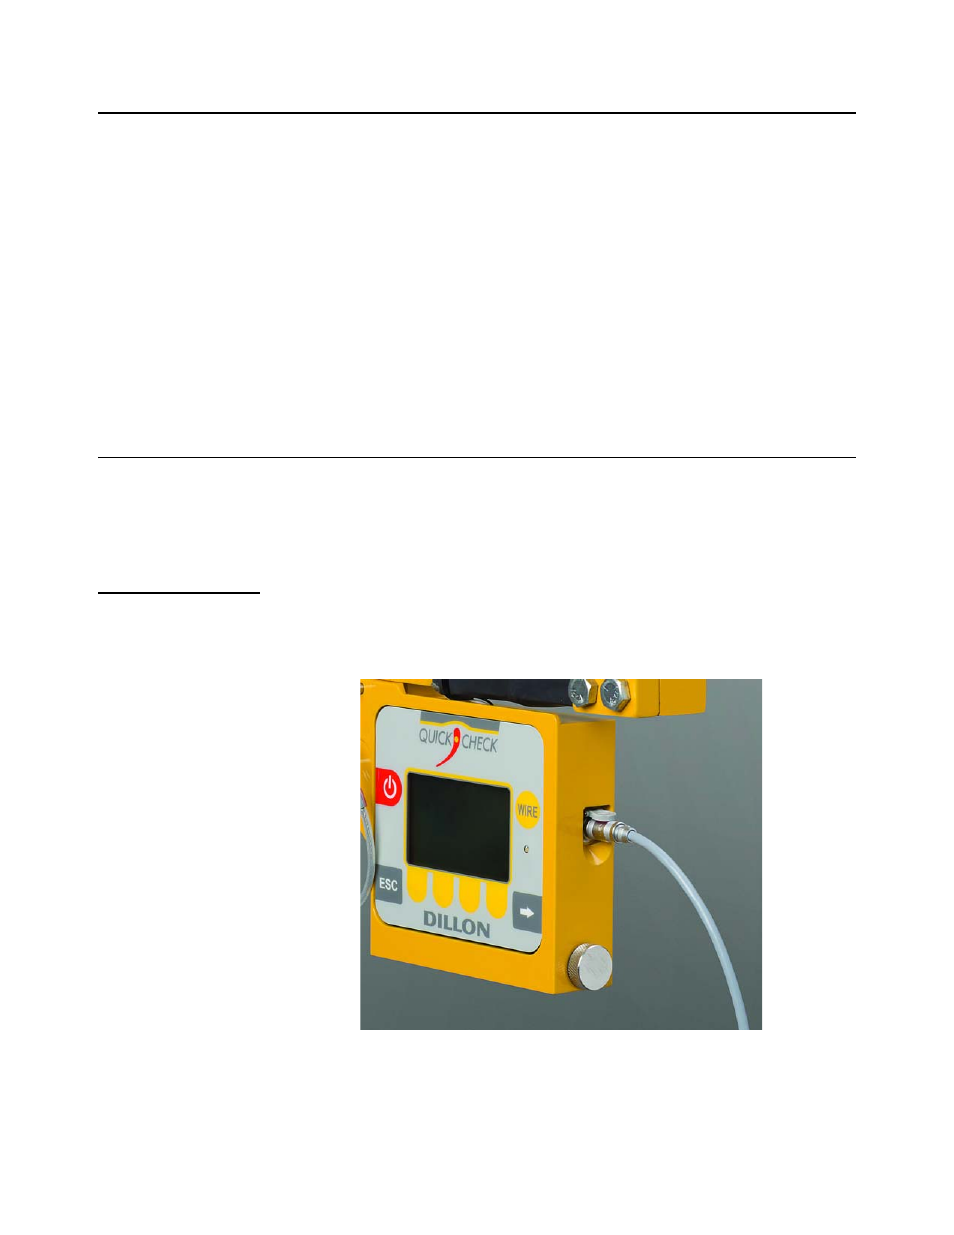 3 important features, 4 using quick check (red) with edxtreme psu, 1